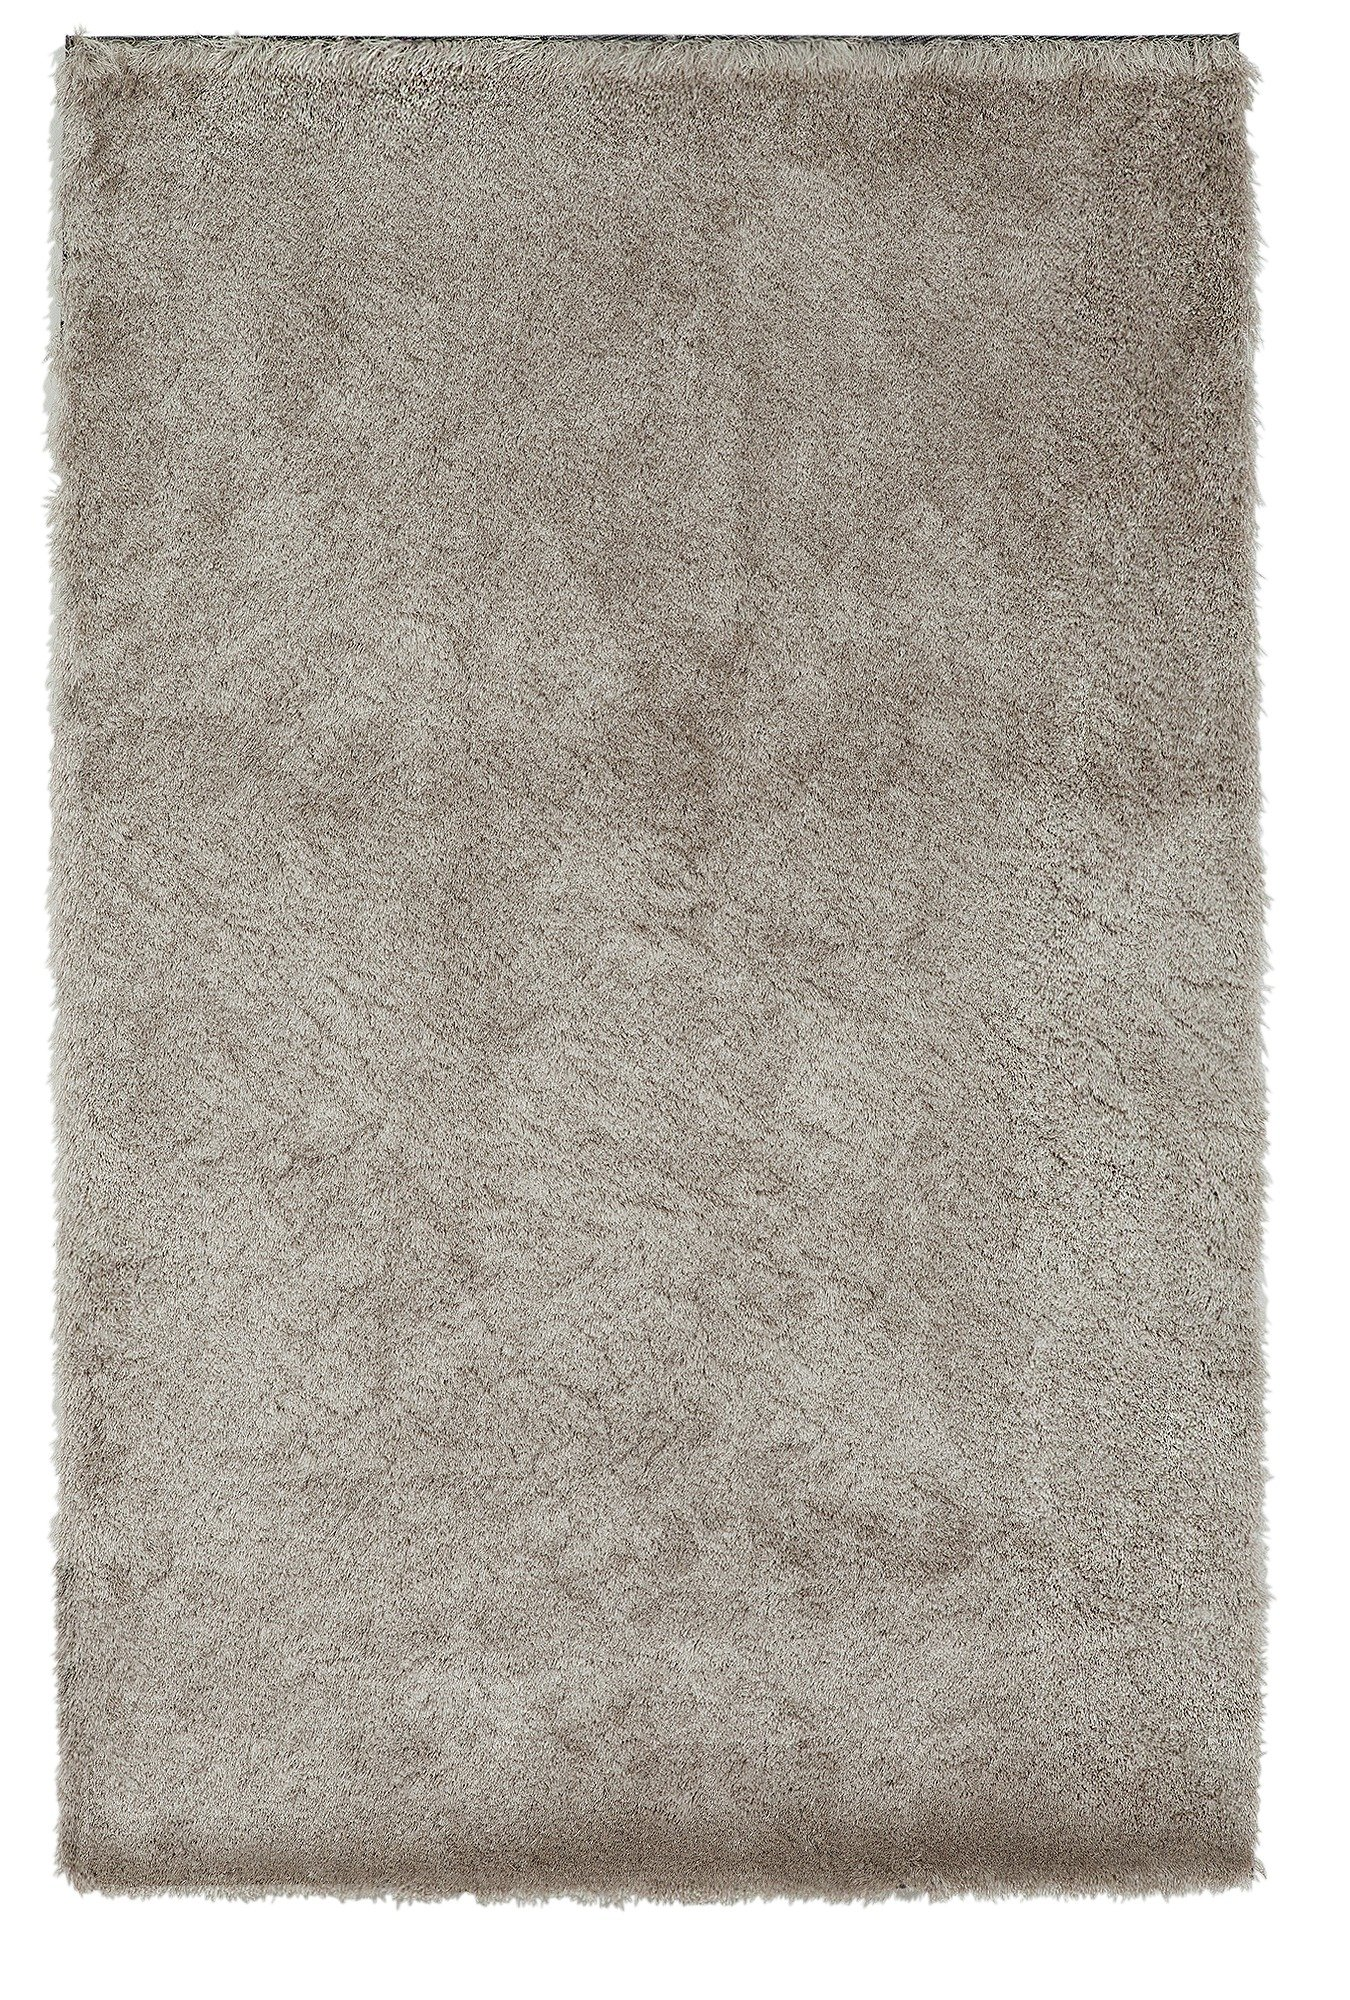 Rugs At Argos Clearance Home Decor